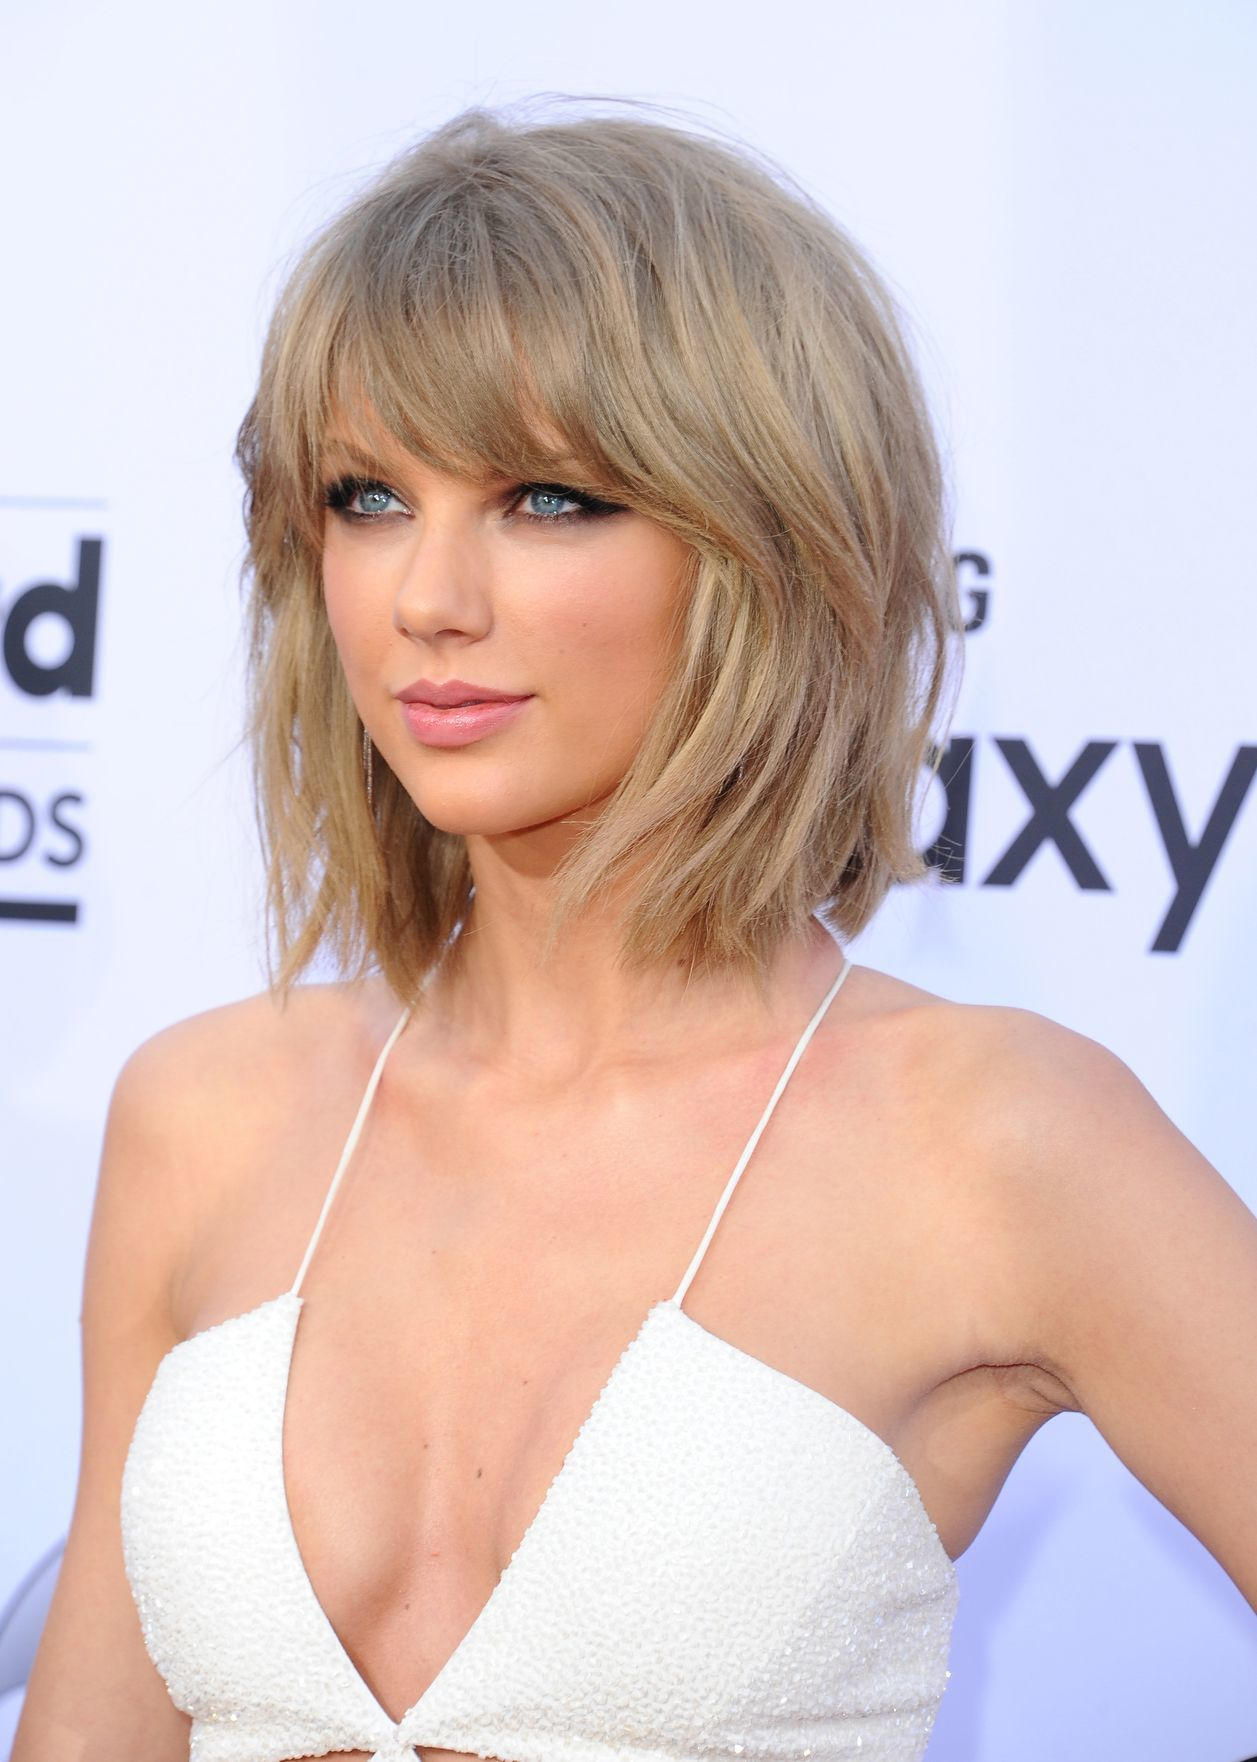 taylor swift in 2015 with a mullet shag hairstyle